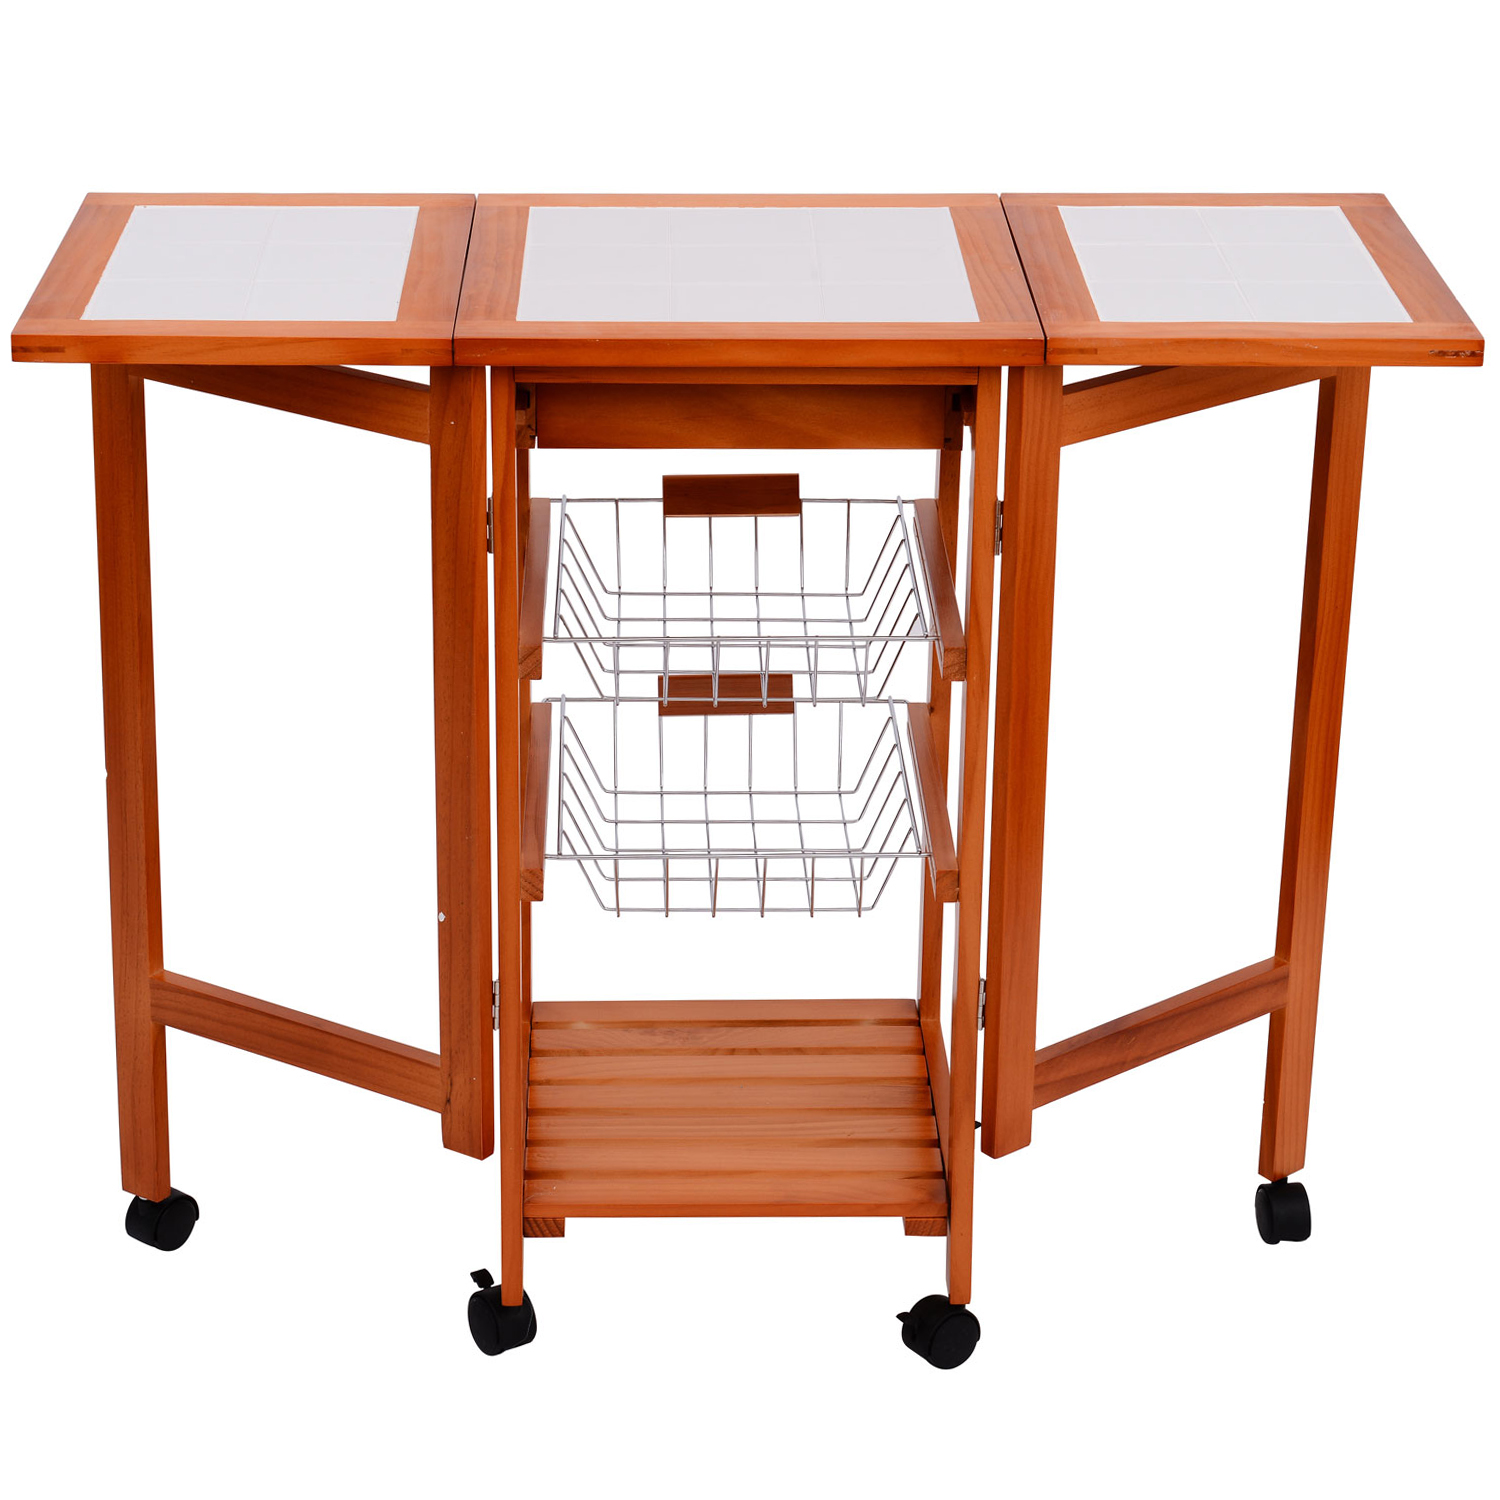 Under $75  sc 1 st  Walmart & Kitchen Islands u0026 Carts - Walmart.com islam-shia.org